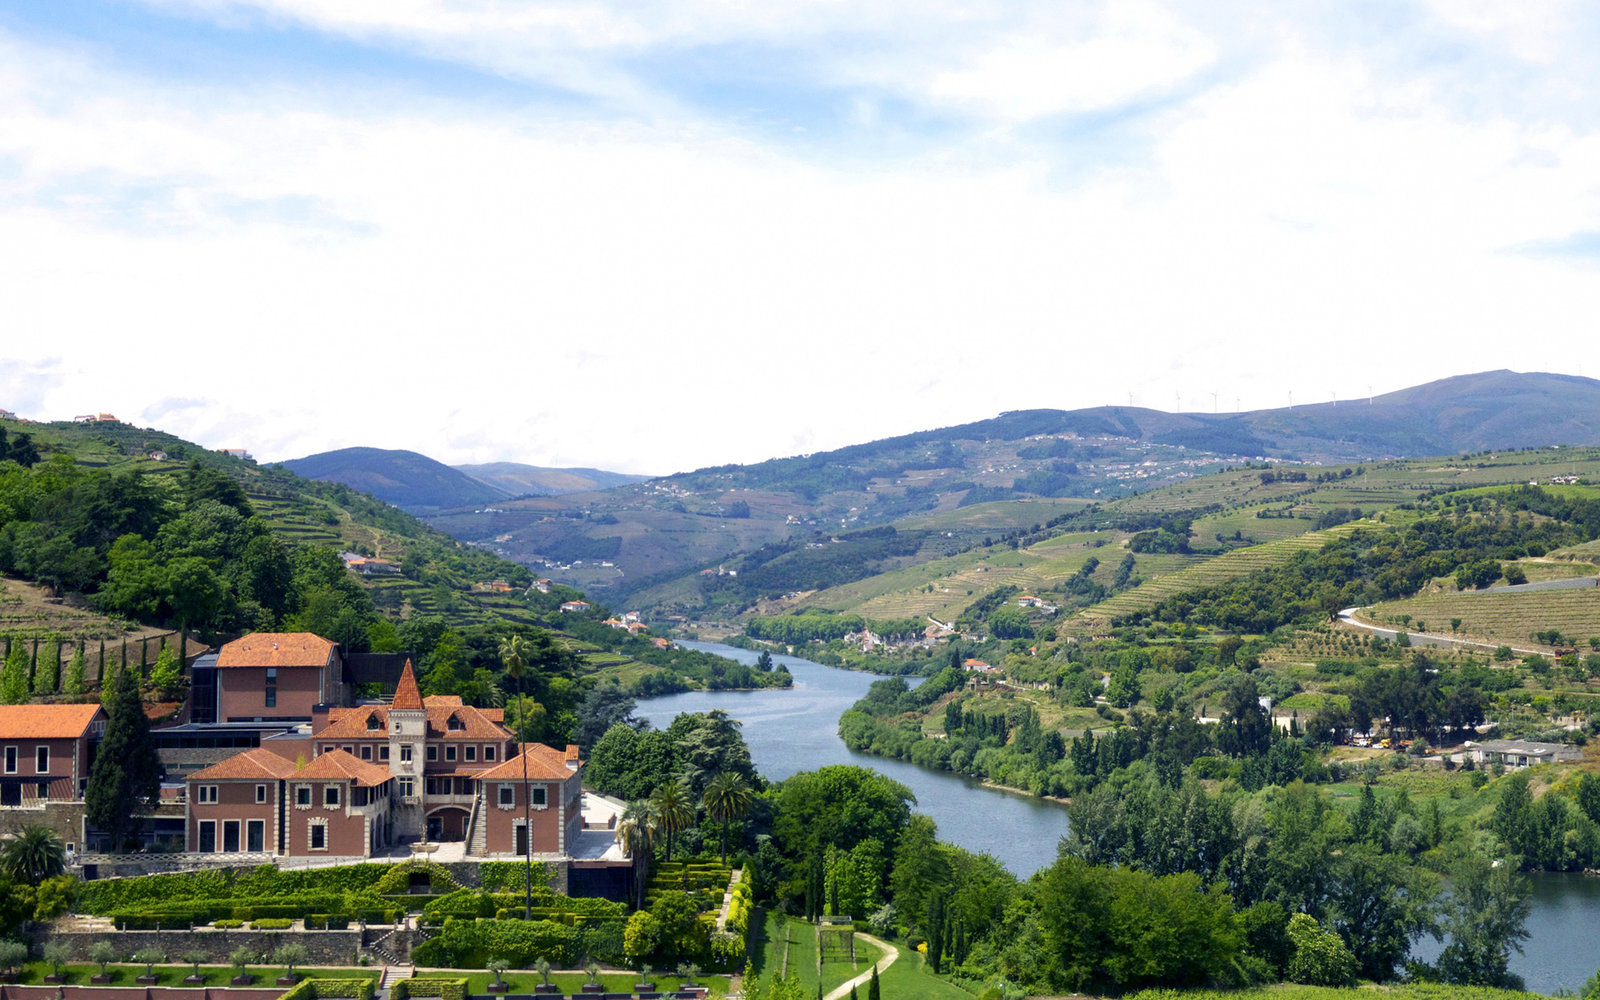 8. Douro Valley, Portugal